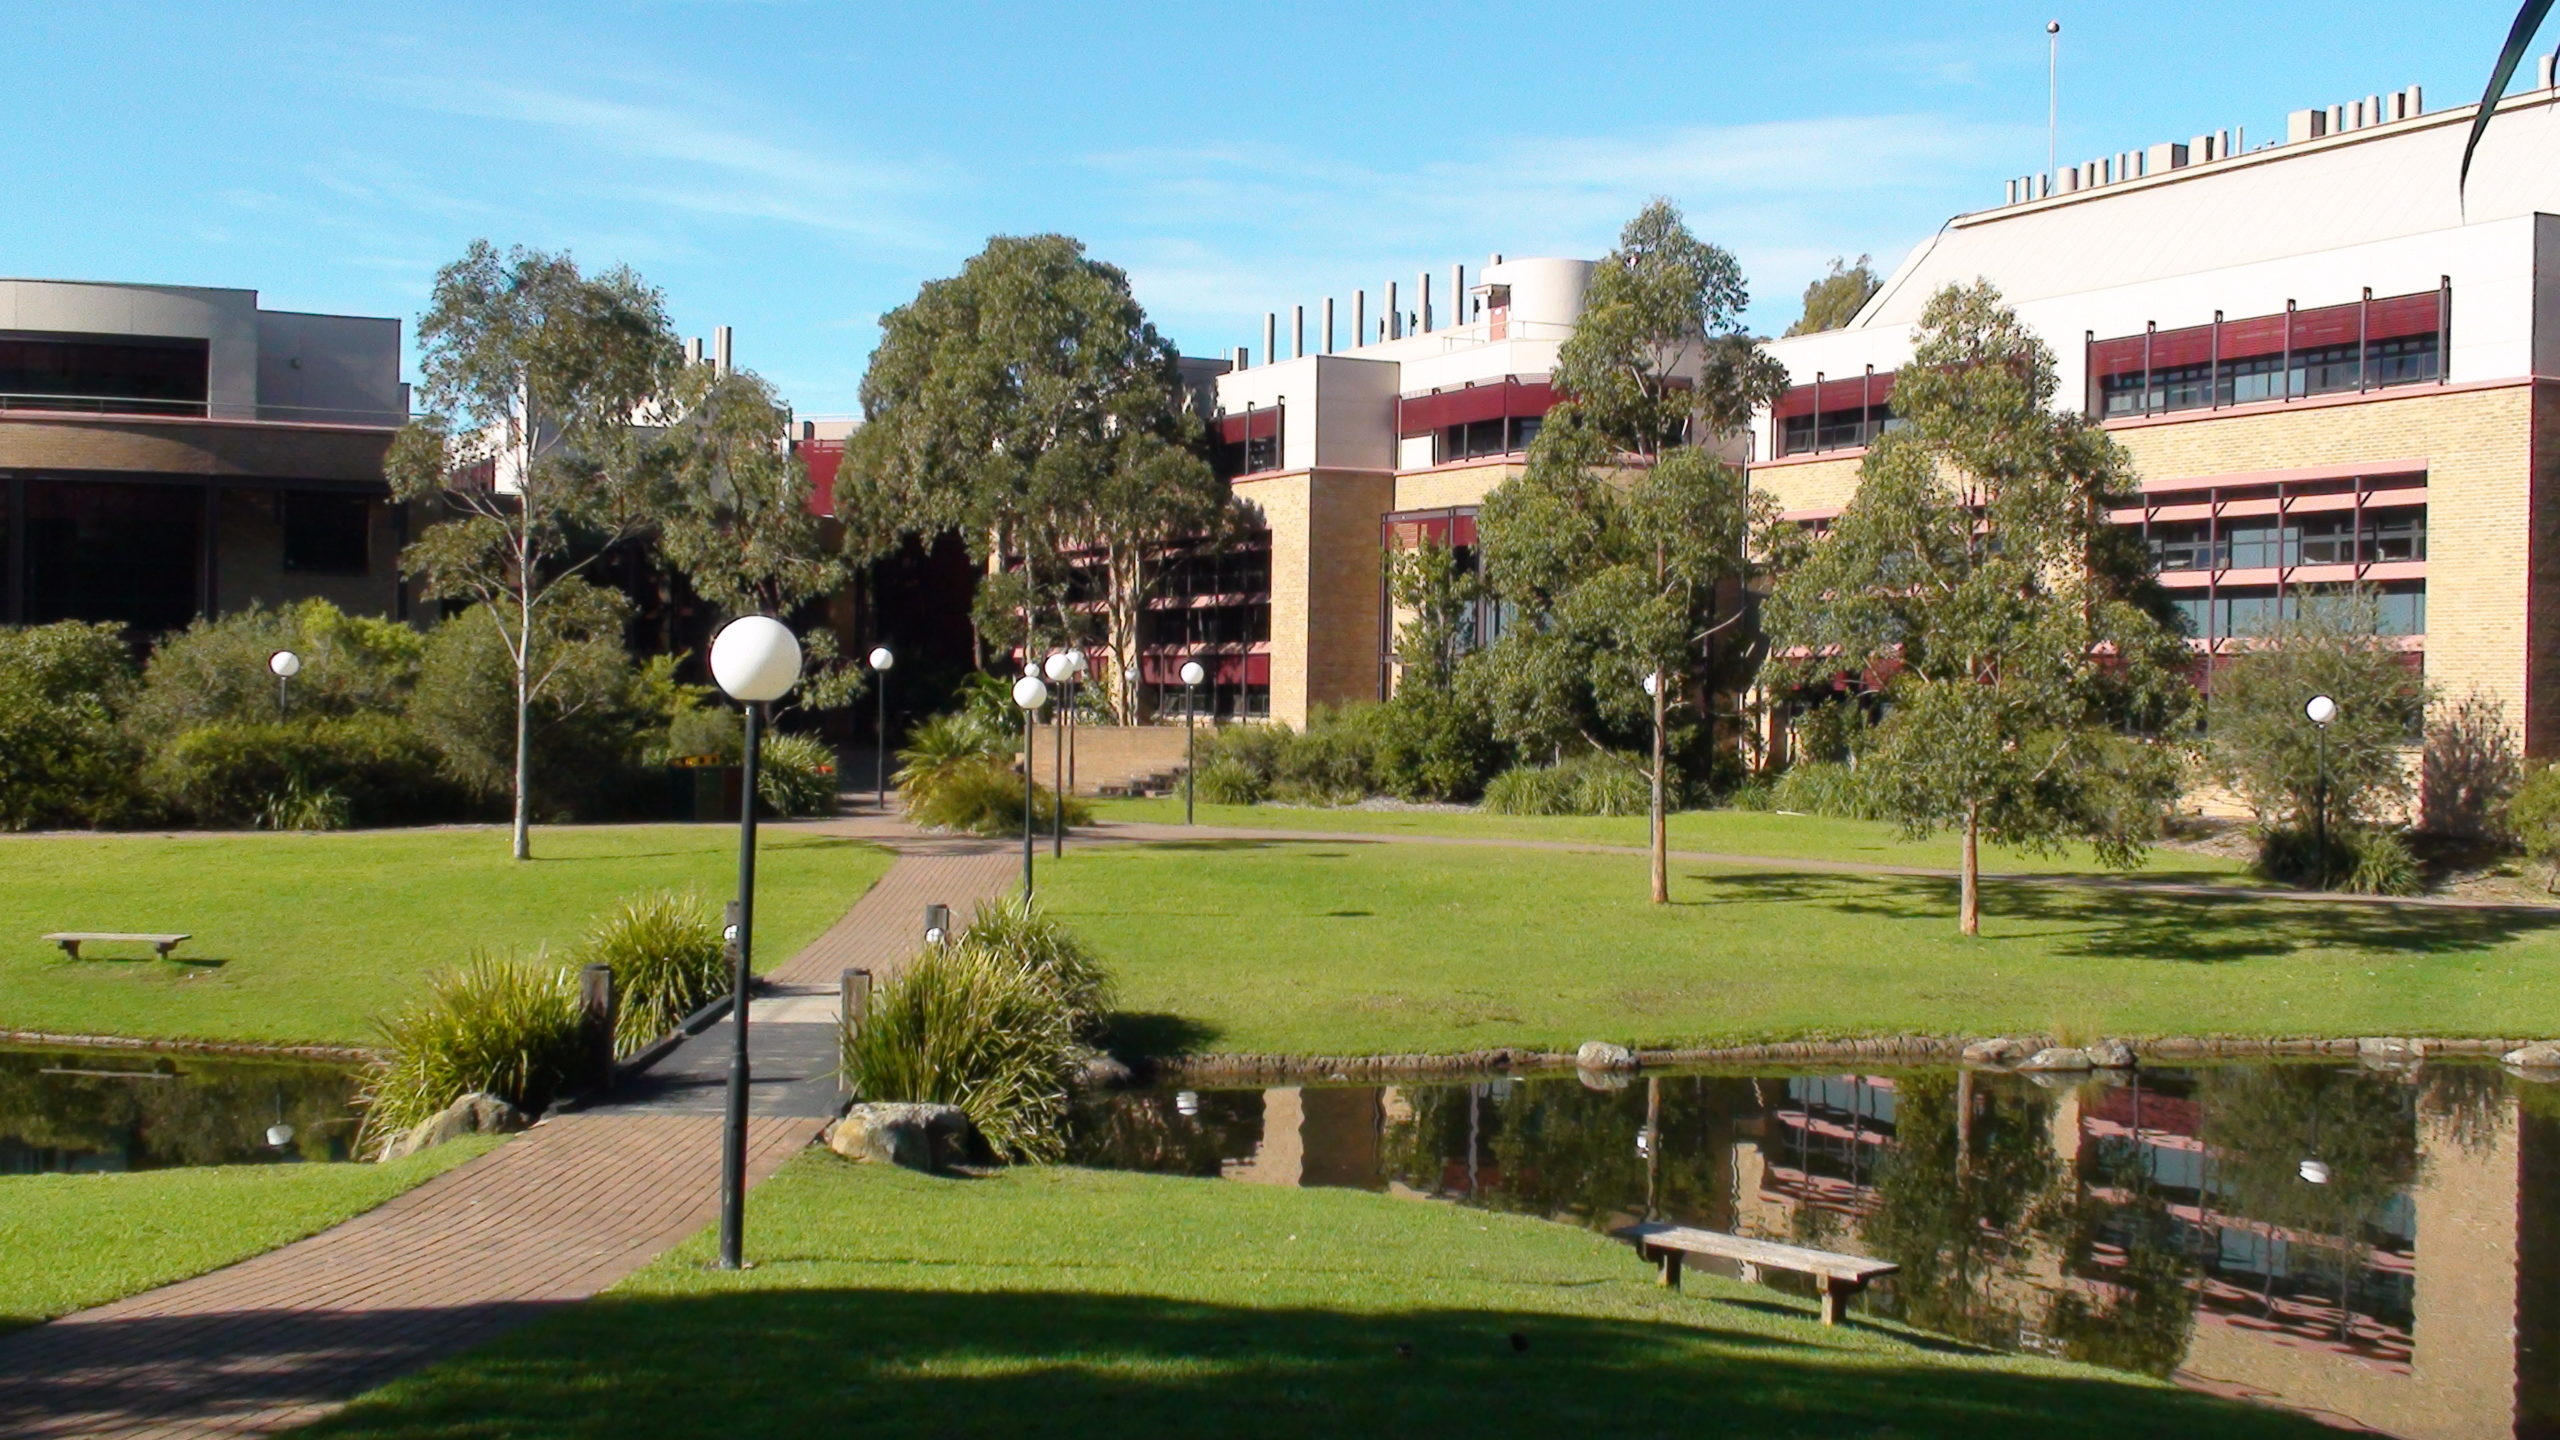 UOW ranks in the top 100 universities for 2 subjects